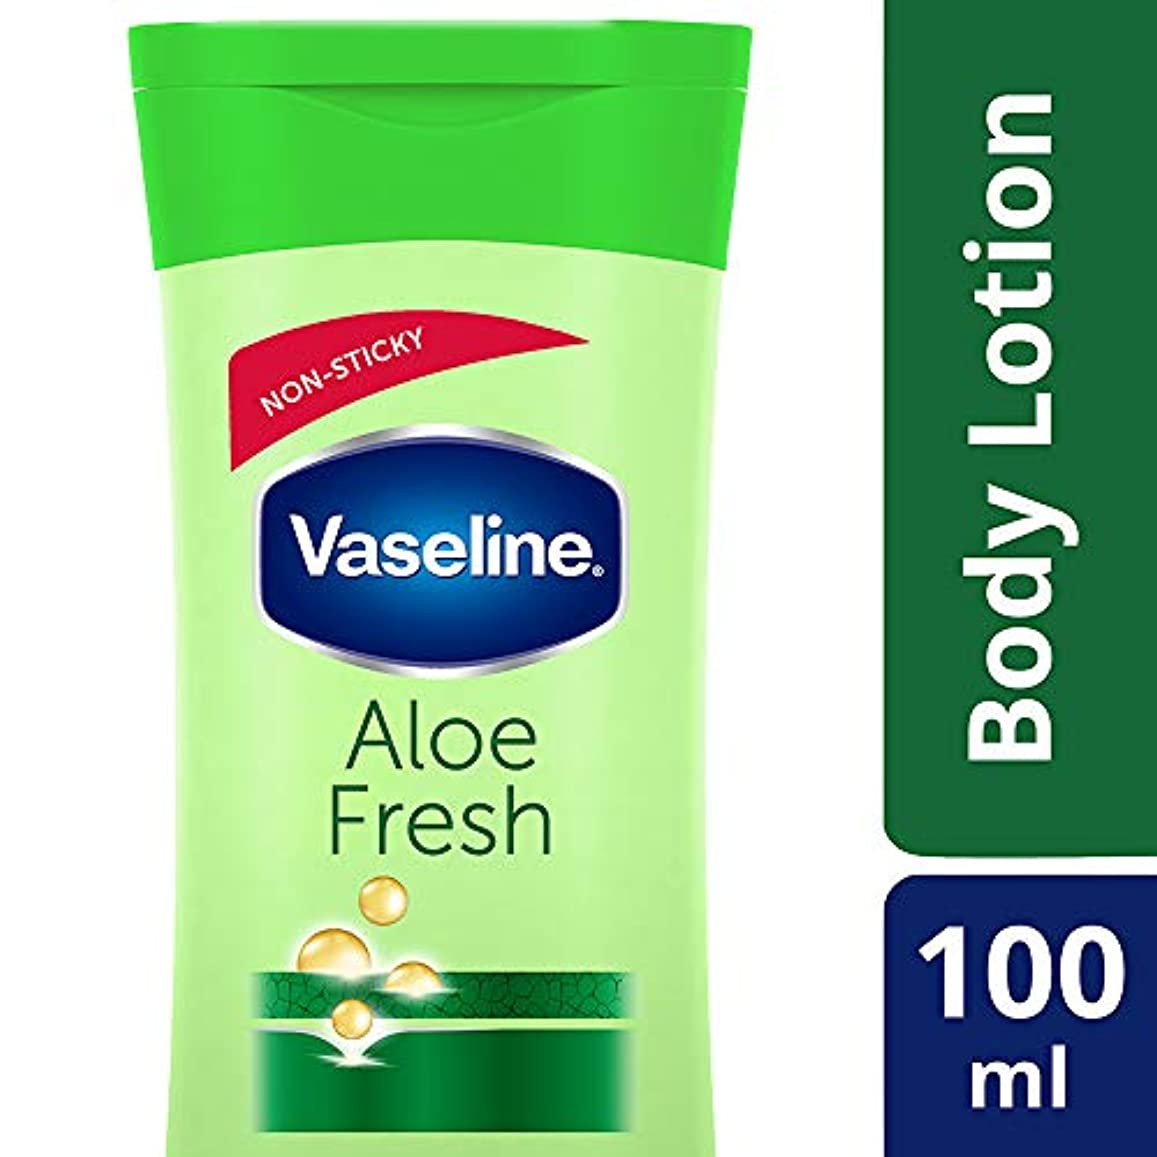 Vaseline Intensive Care Aloe Fresh Body Lotion, 100 ml